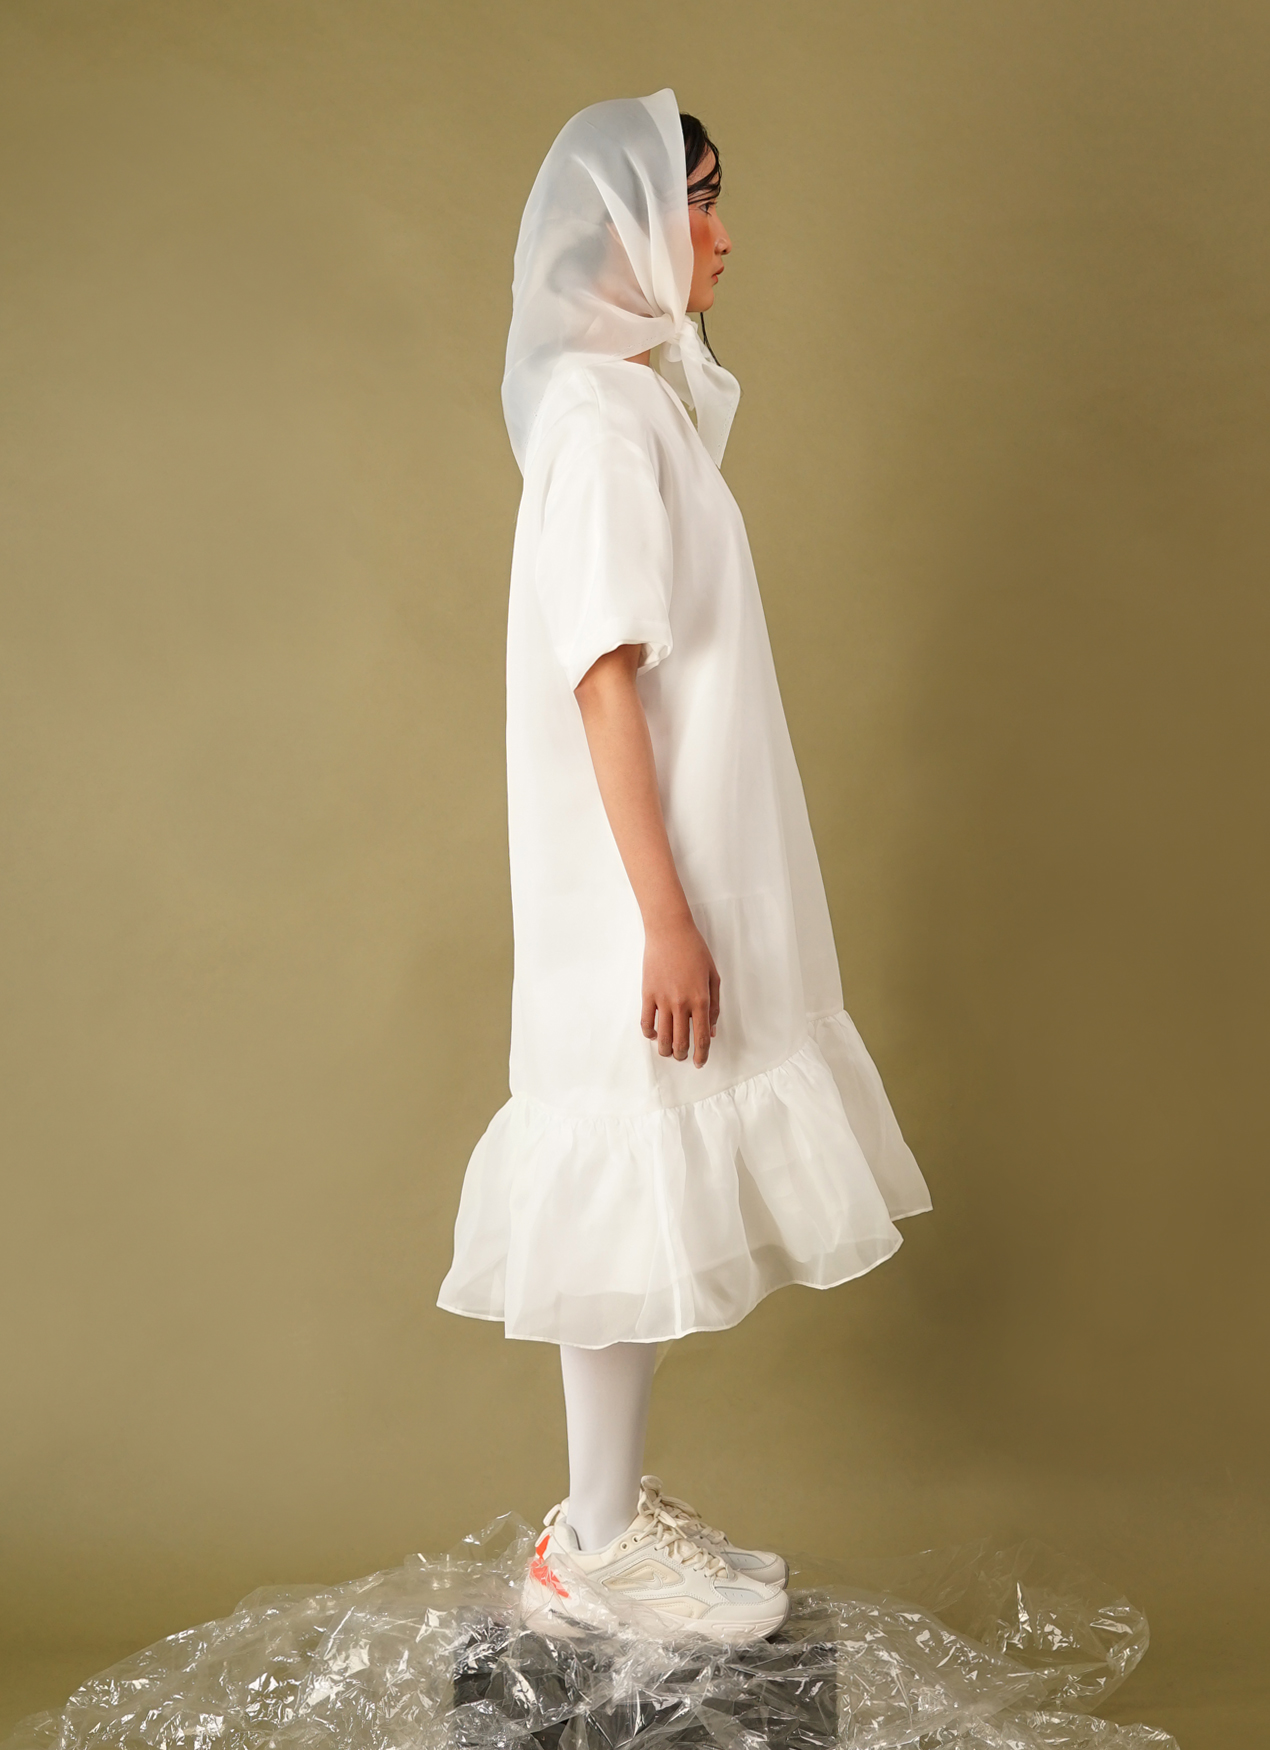 Satchel R003 Dress - White